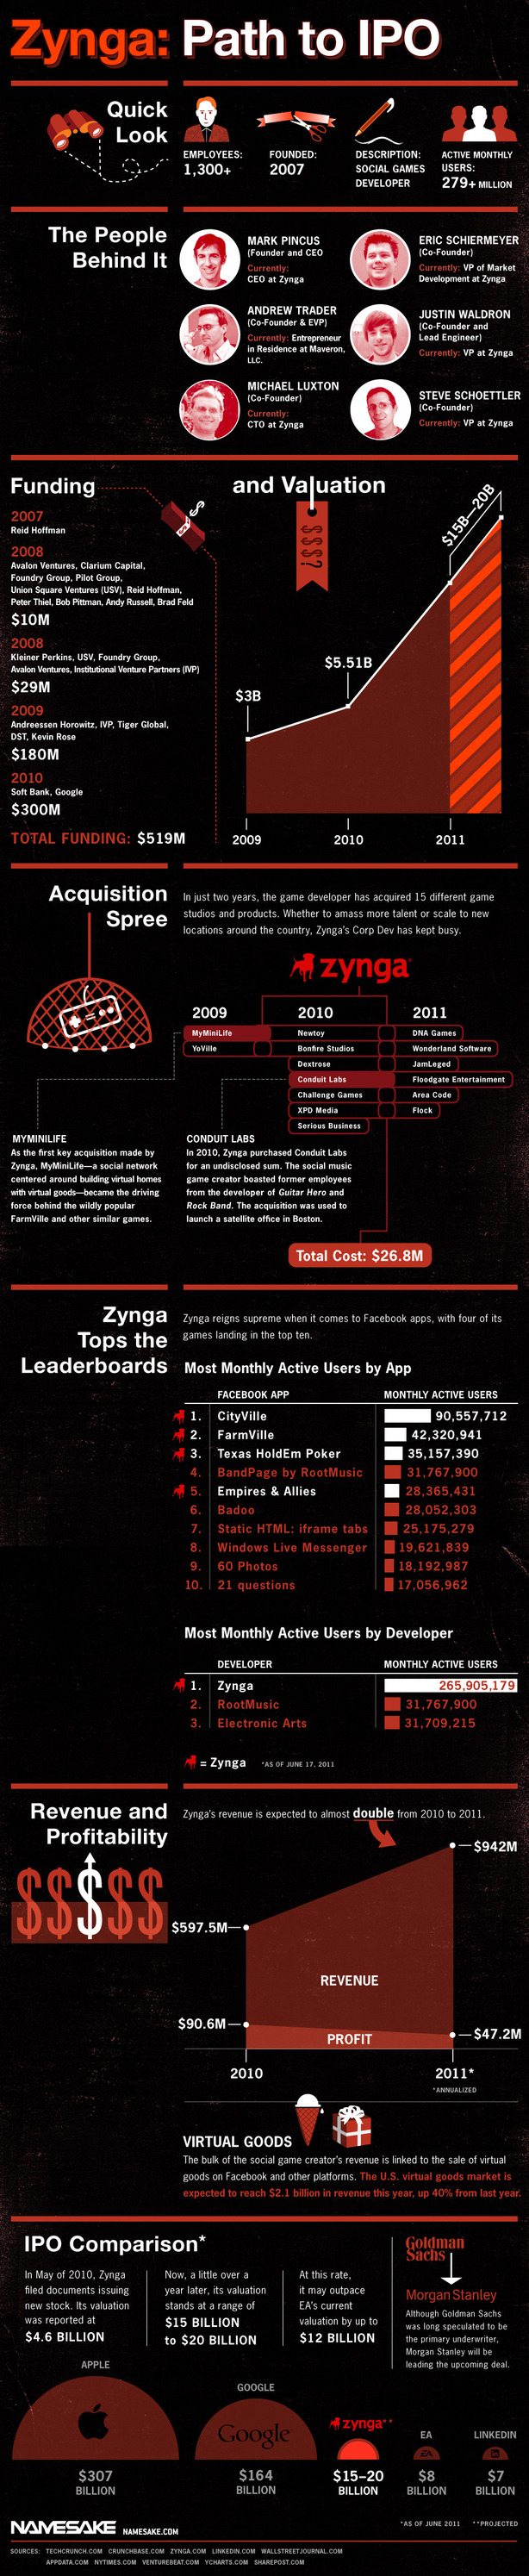 Zynga's Path to IPO